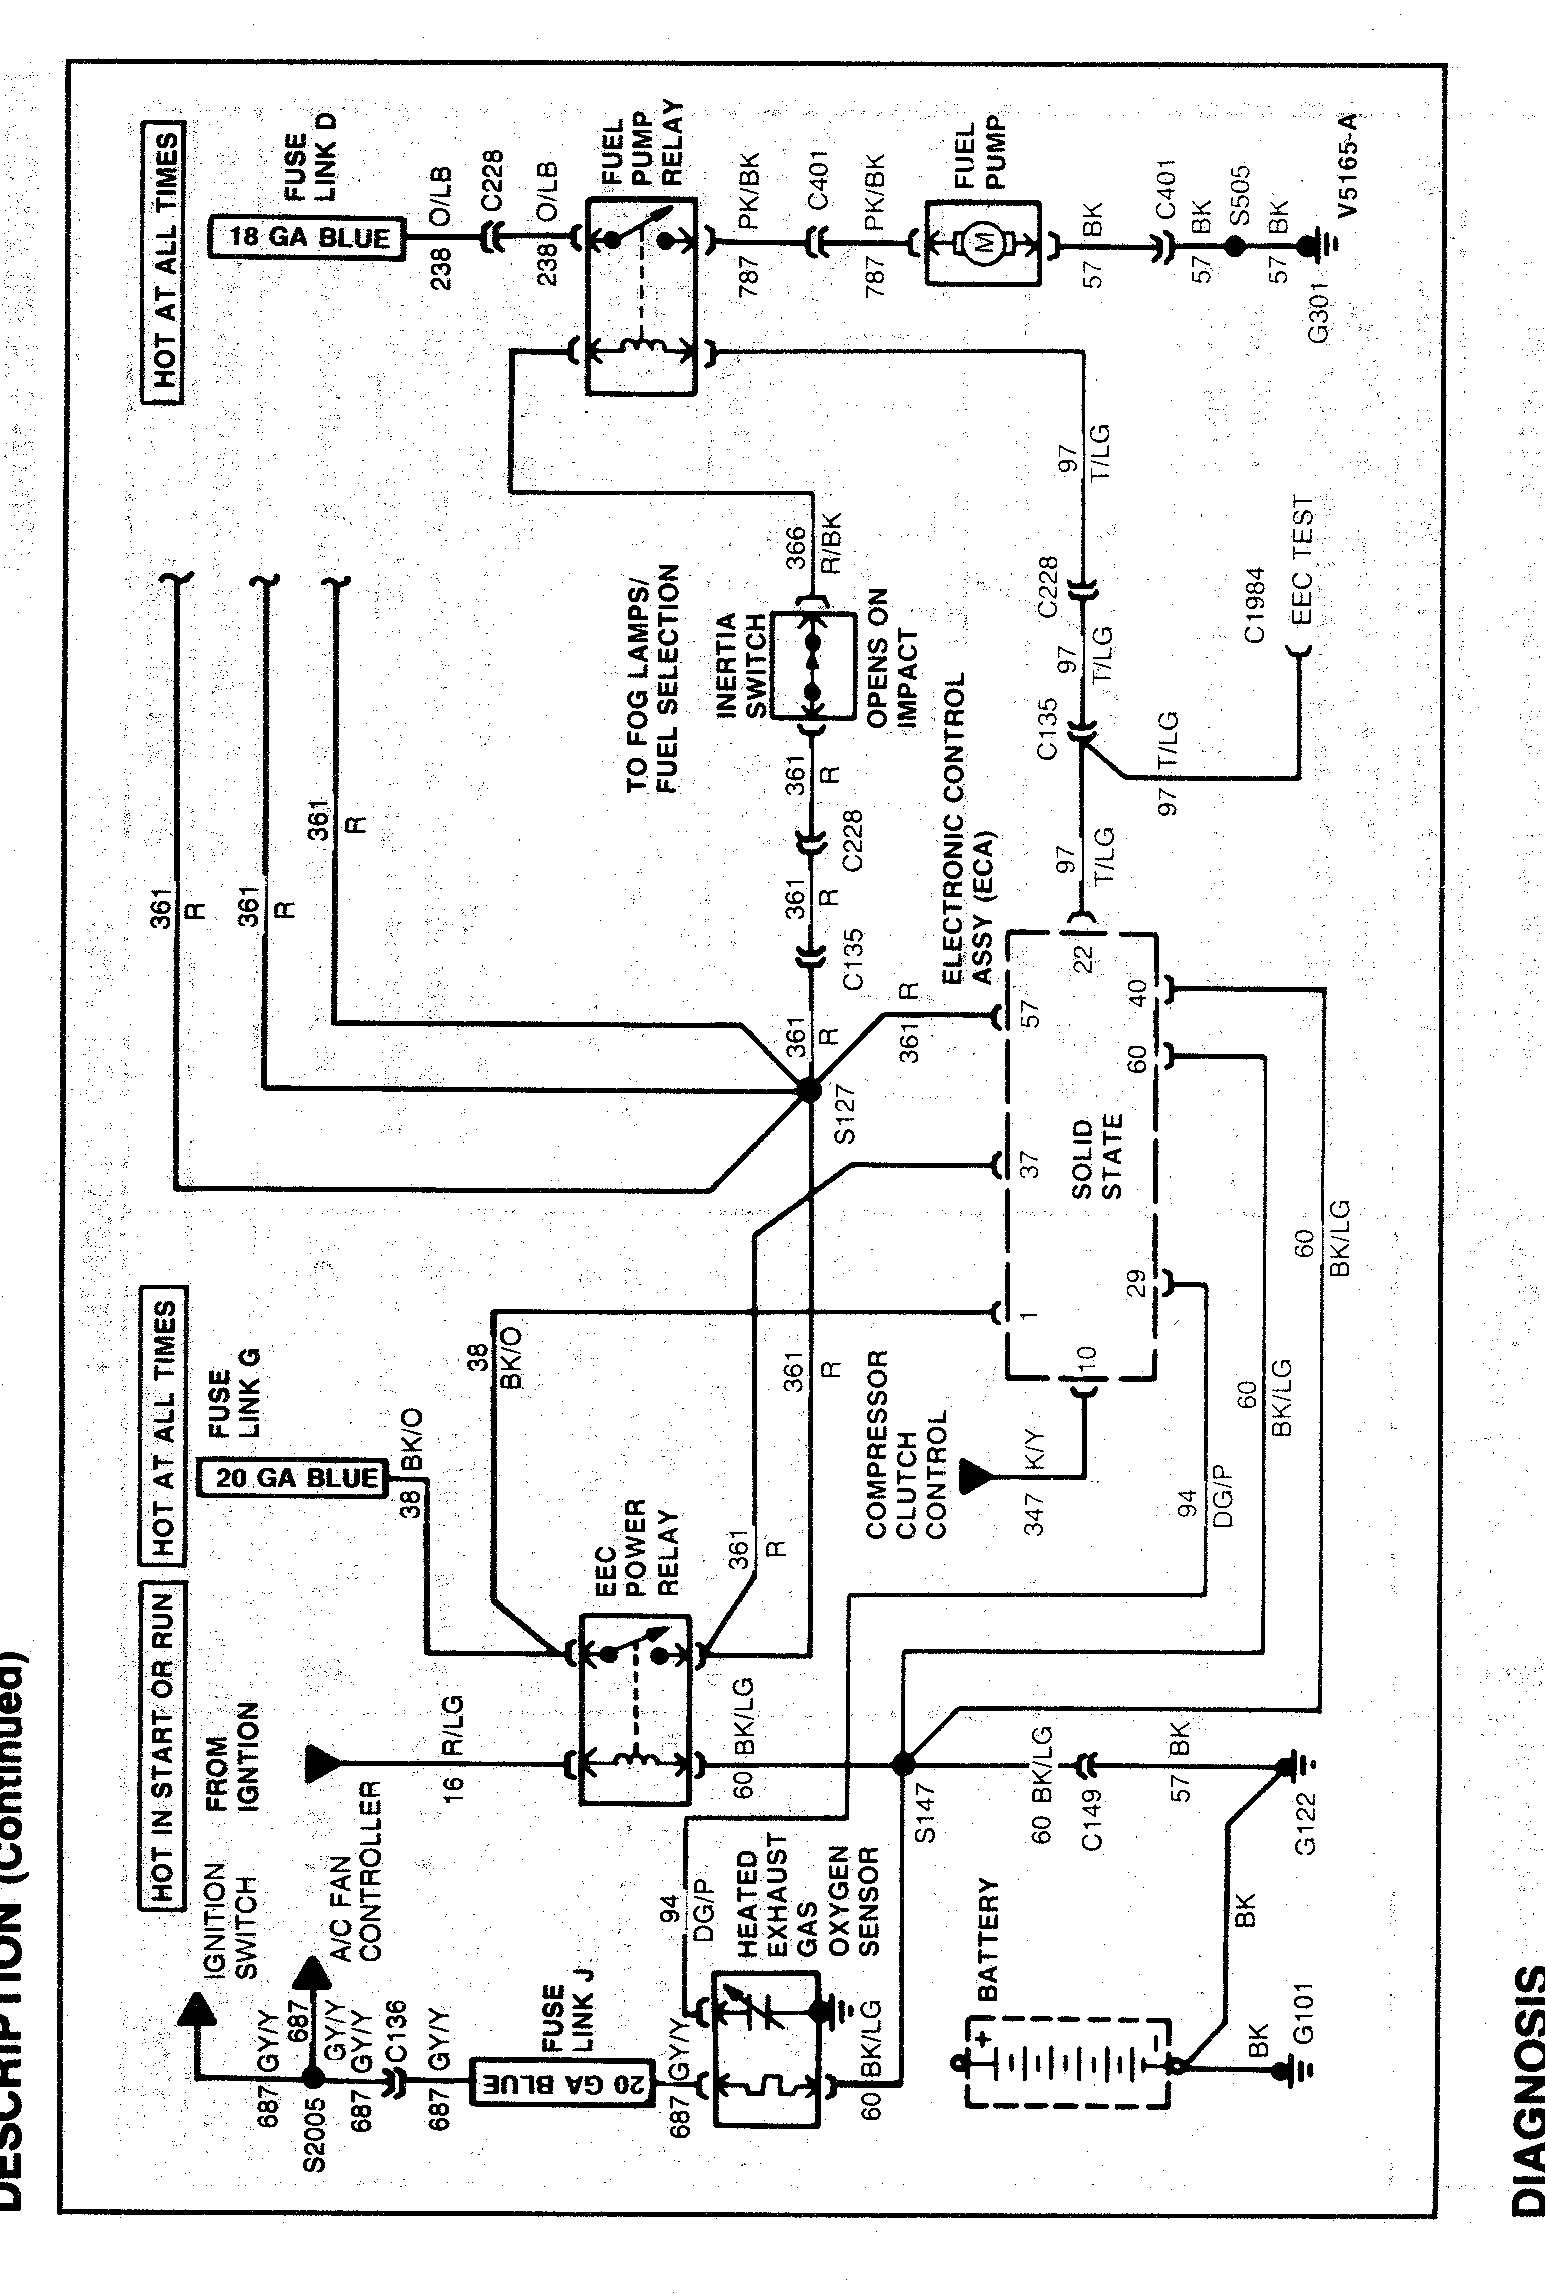 1988 Ford E150 Van Wiring Diagram 1997 Fuel System Library 1951 Pump Diy Enthusiasts Diagrams U2022 1990 Corvette Relay Econoline